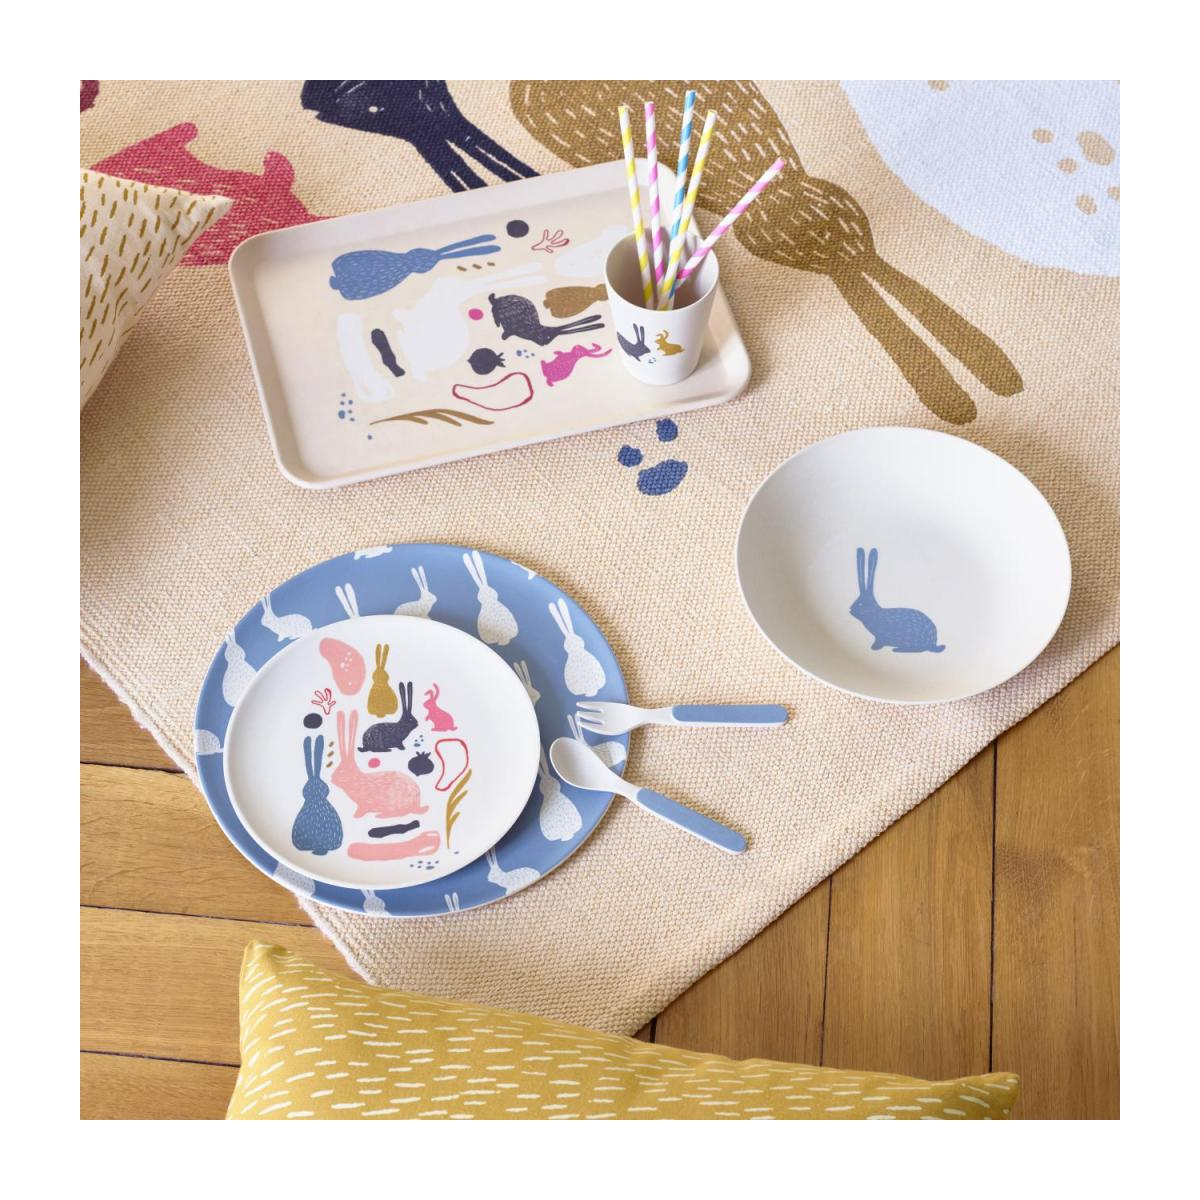 Dessert plate with bunny patterns n°5